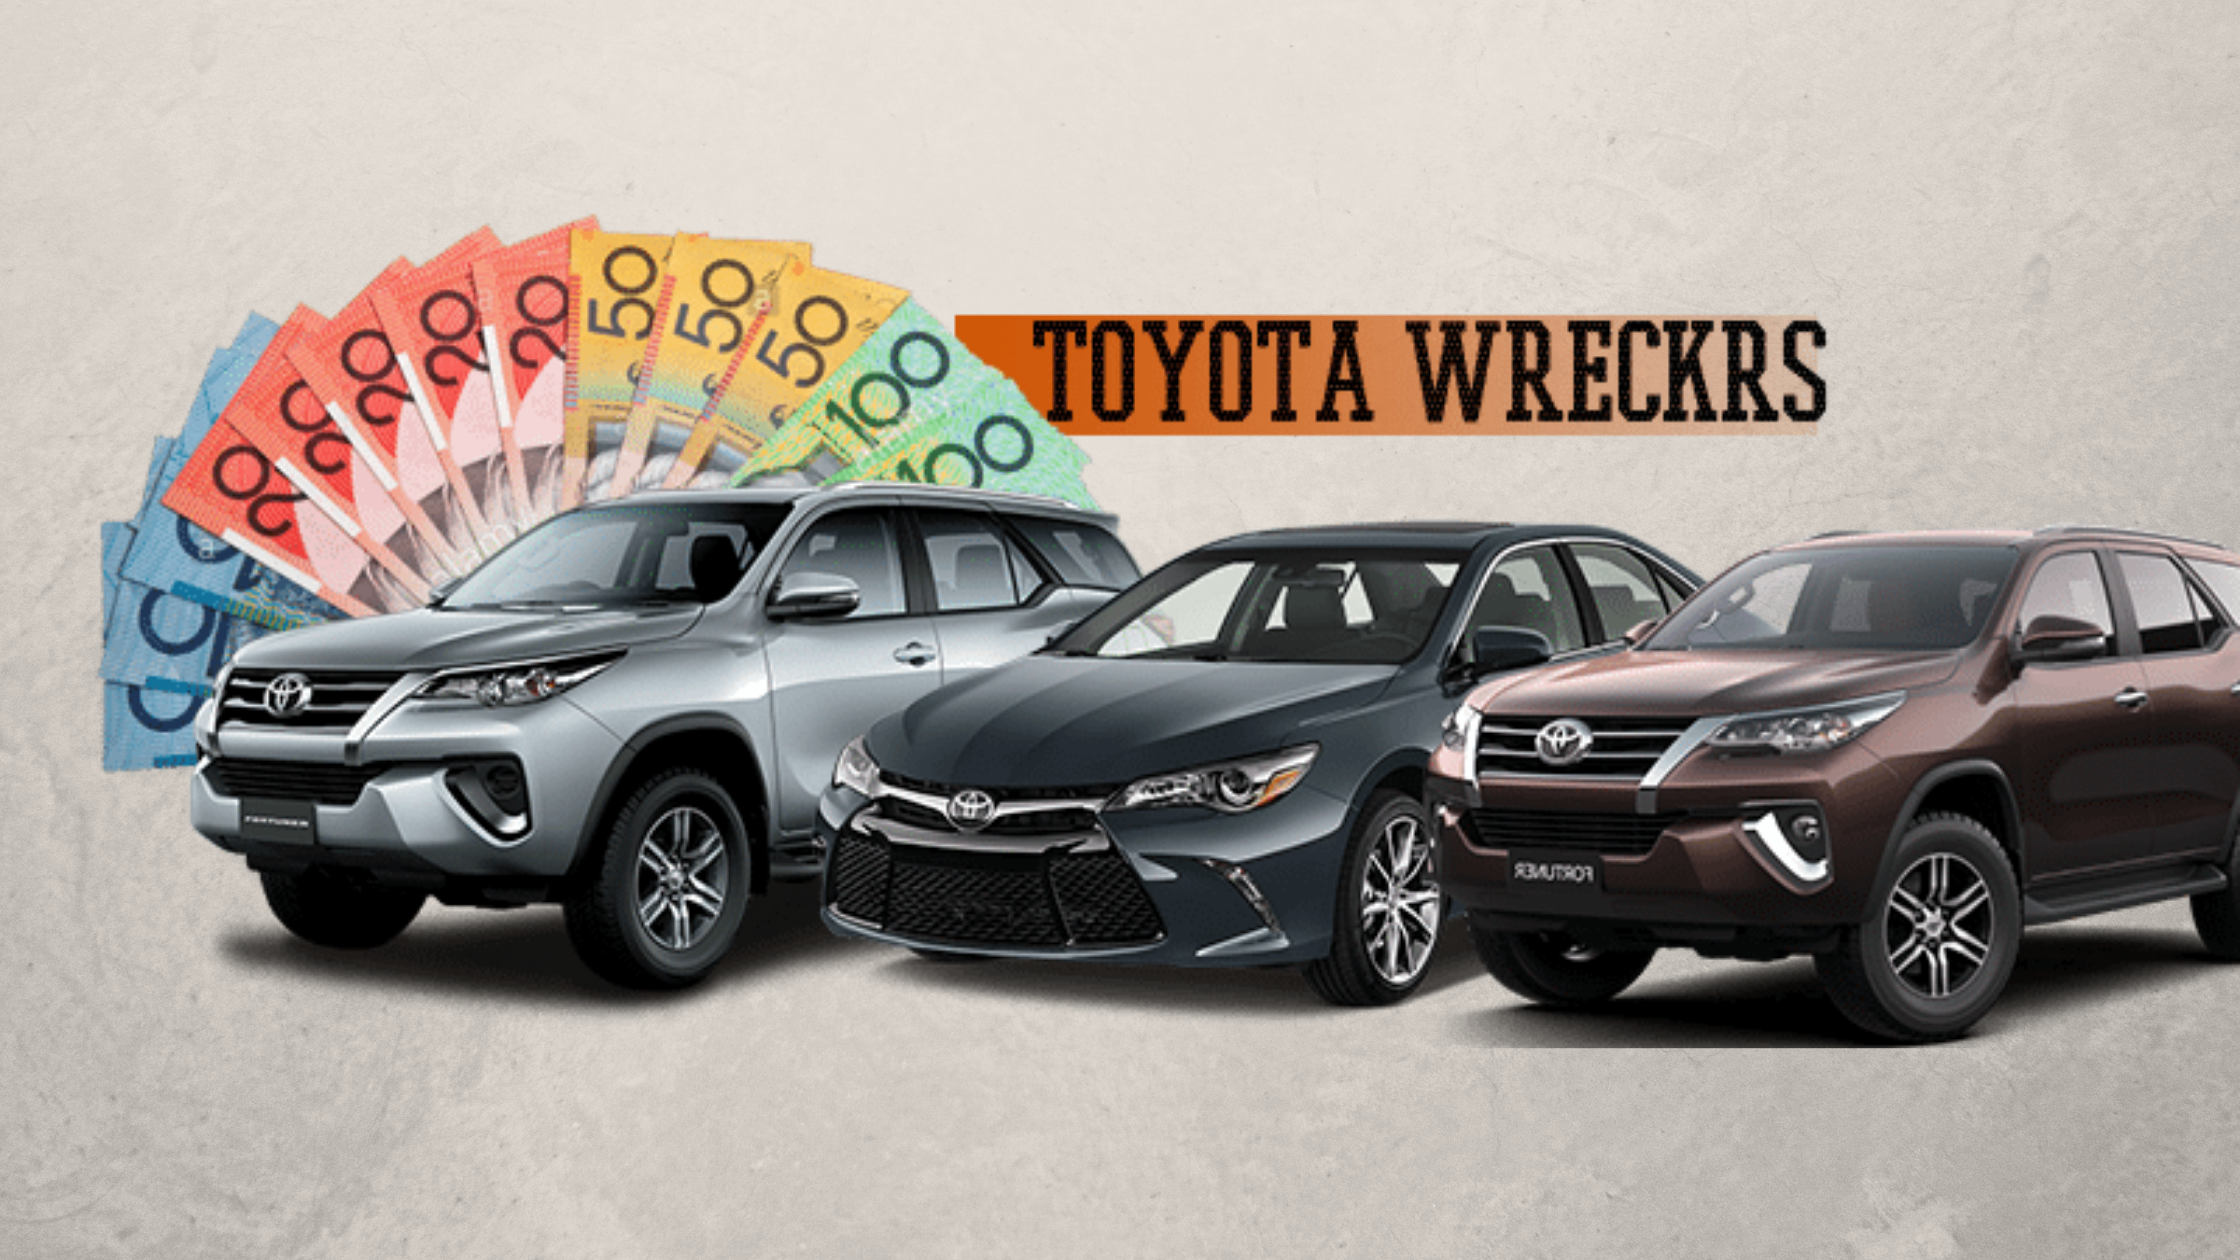 All you need to know about Toyota wreckers Newcastle